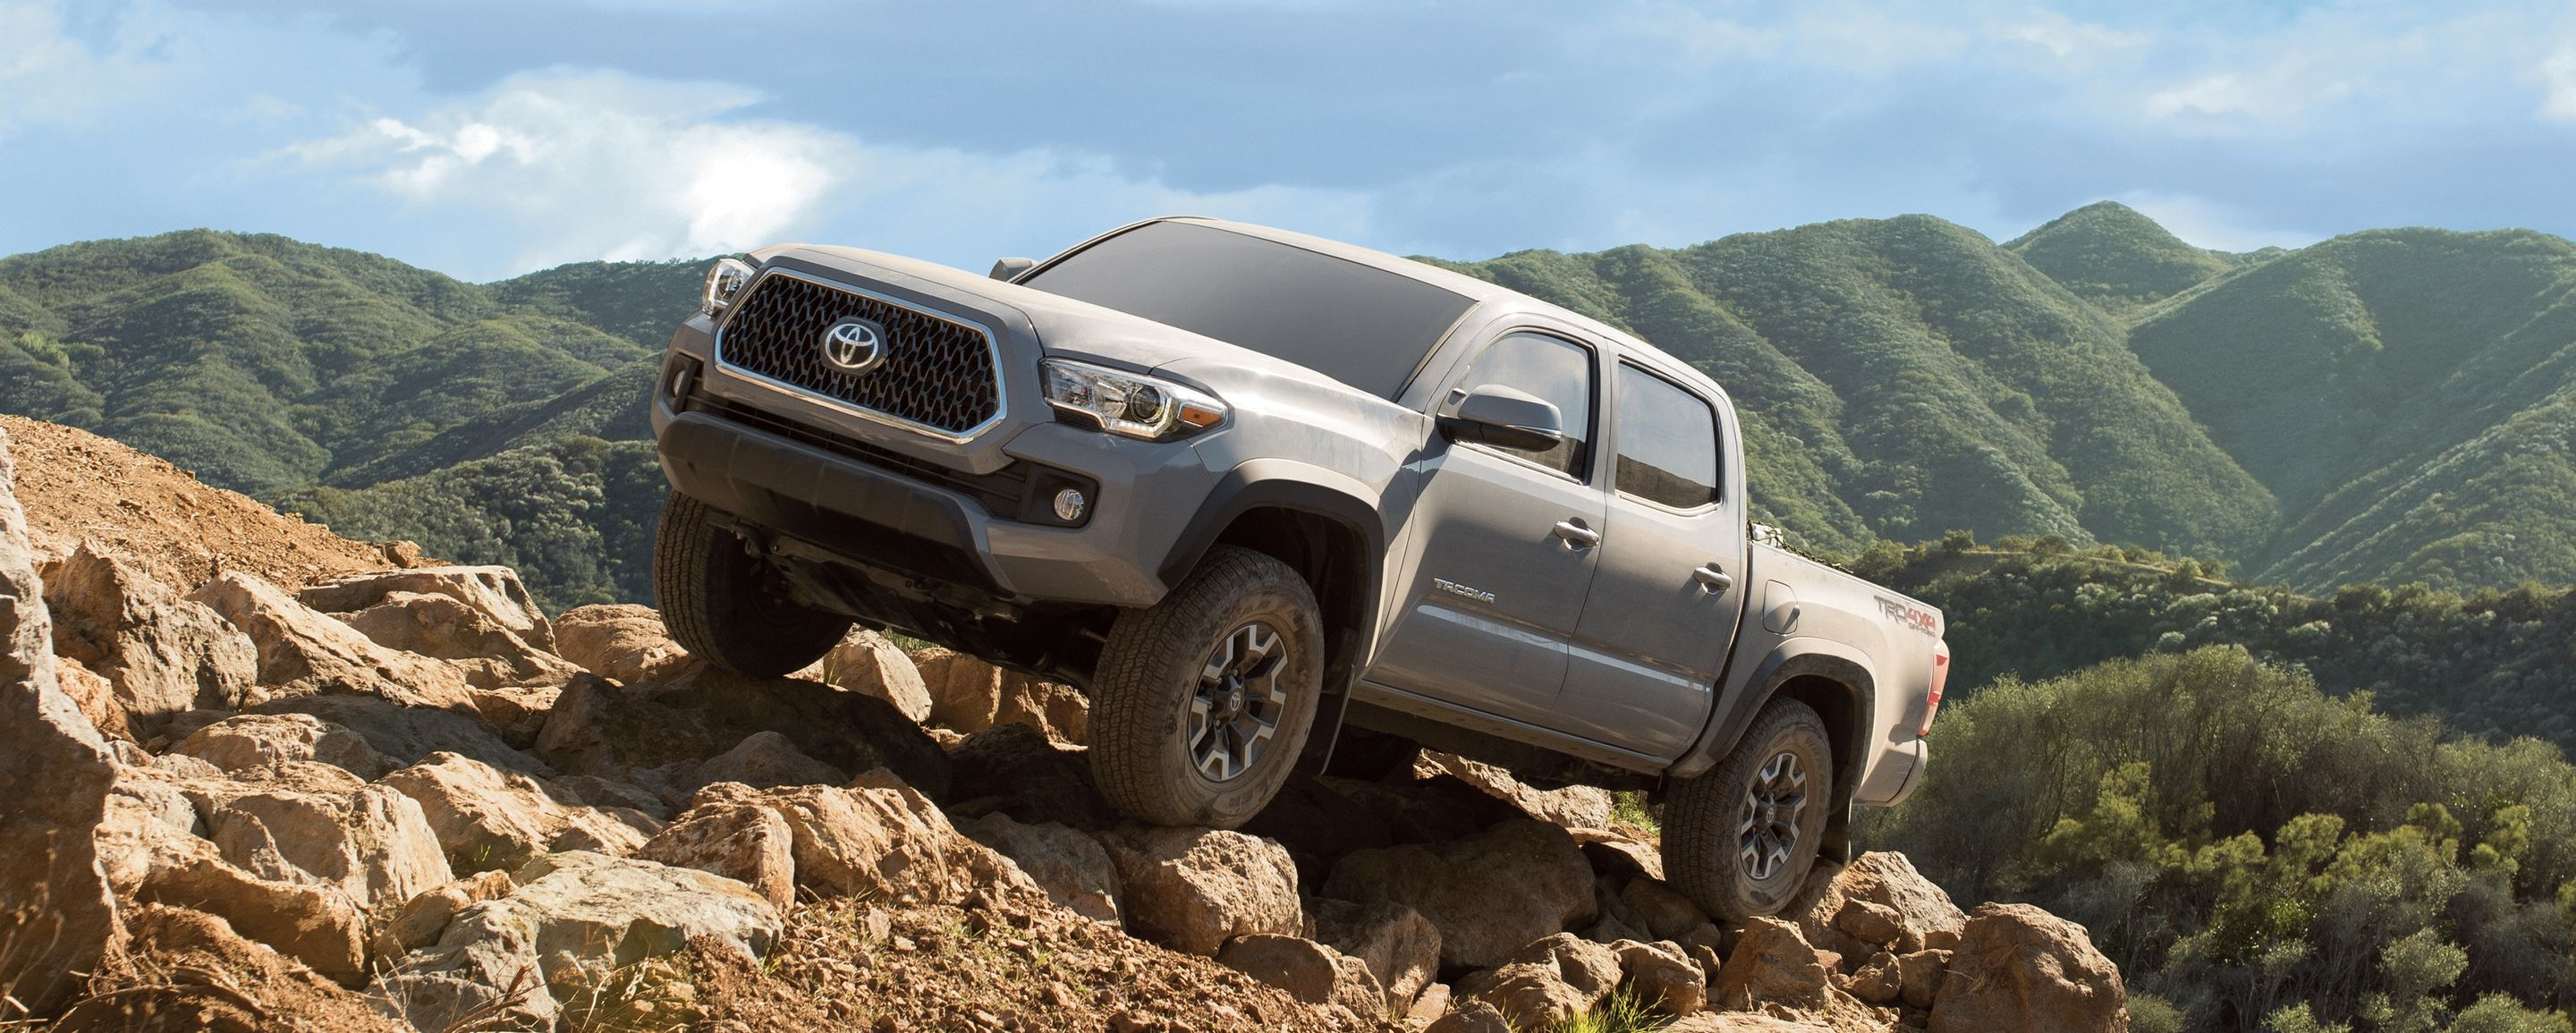 2019 Toyota Tacoma for Sale near Des Moines, IA